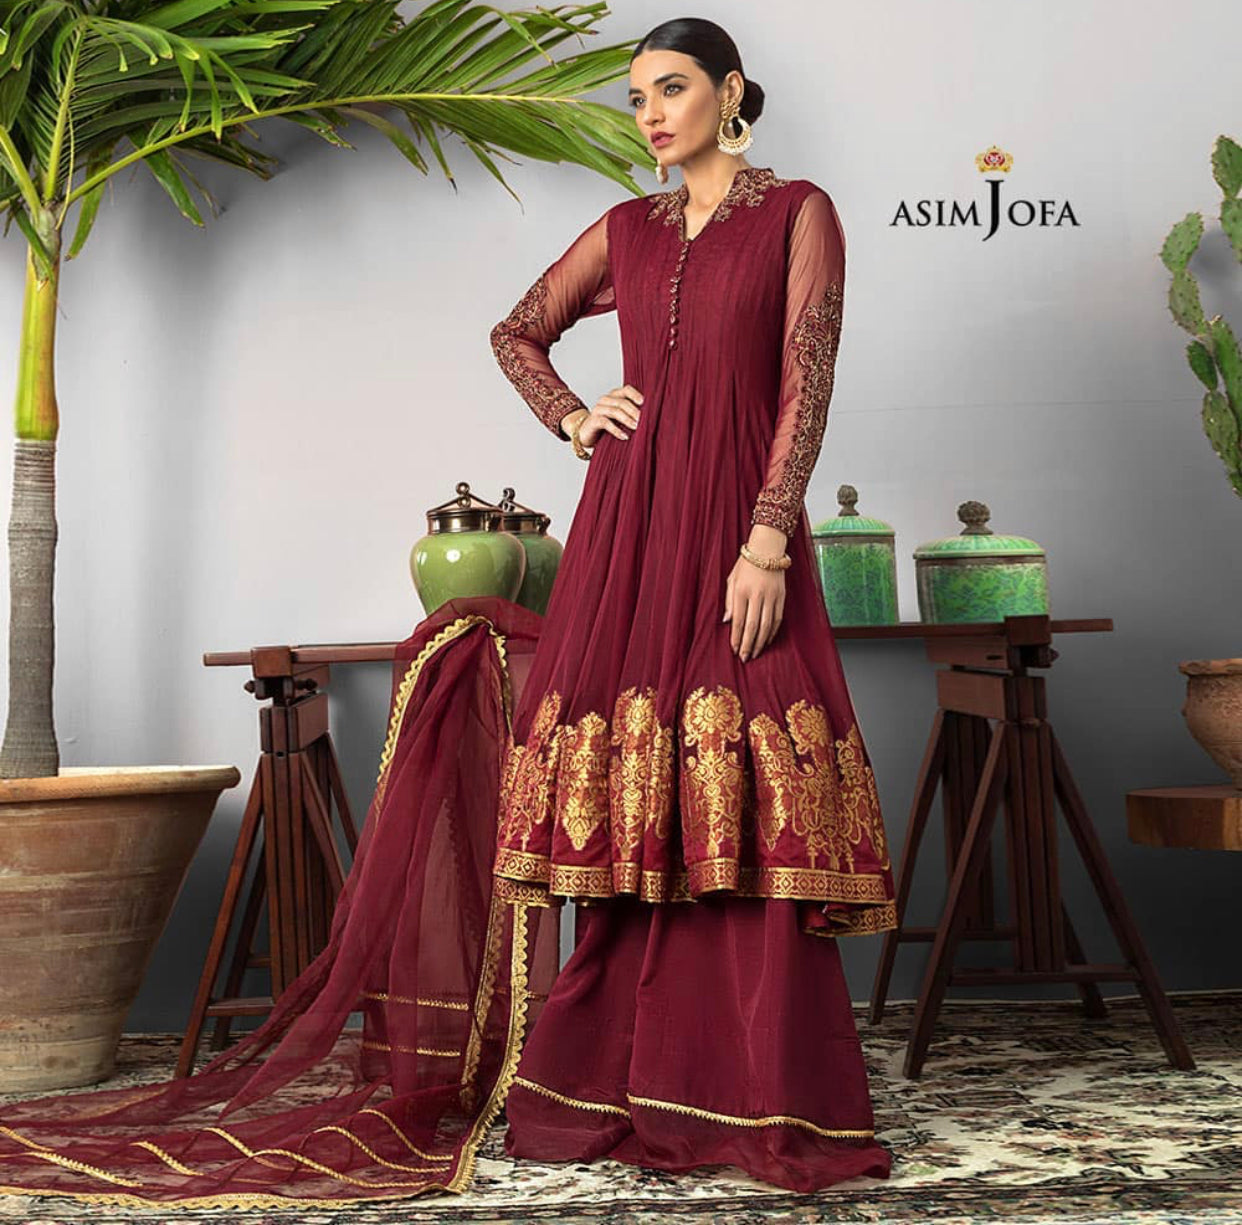 Asim jofa lalam Ready-to-wear collection UK USA Online